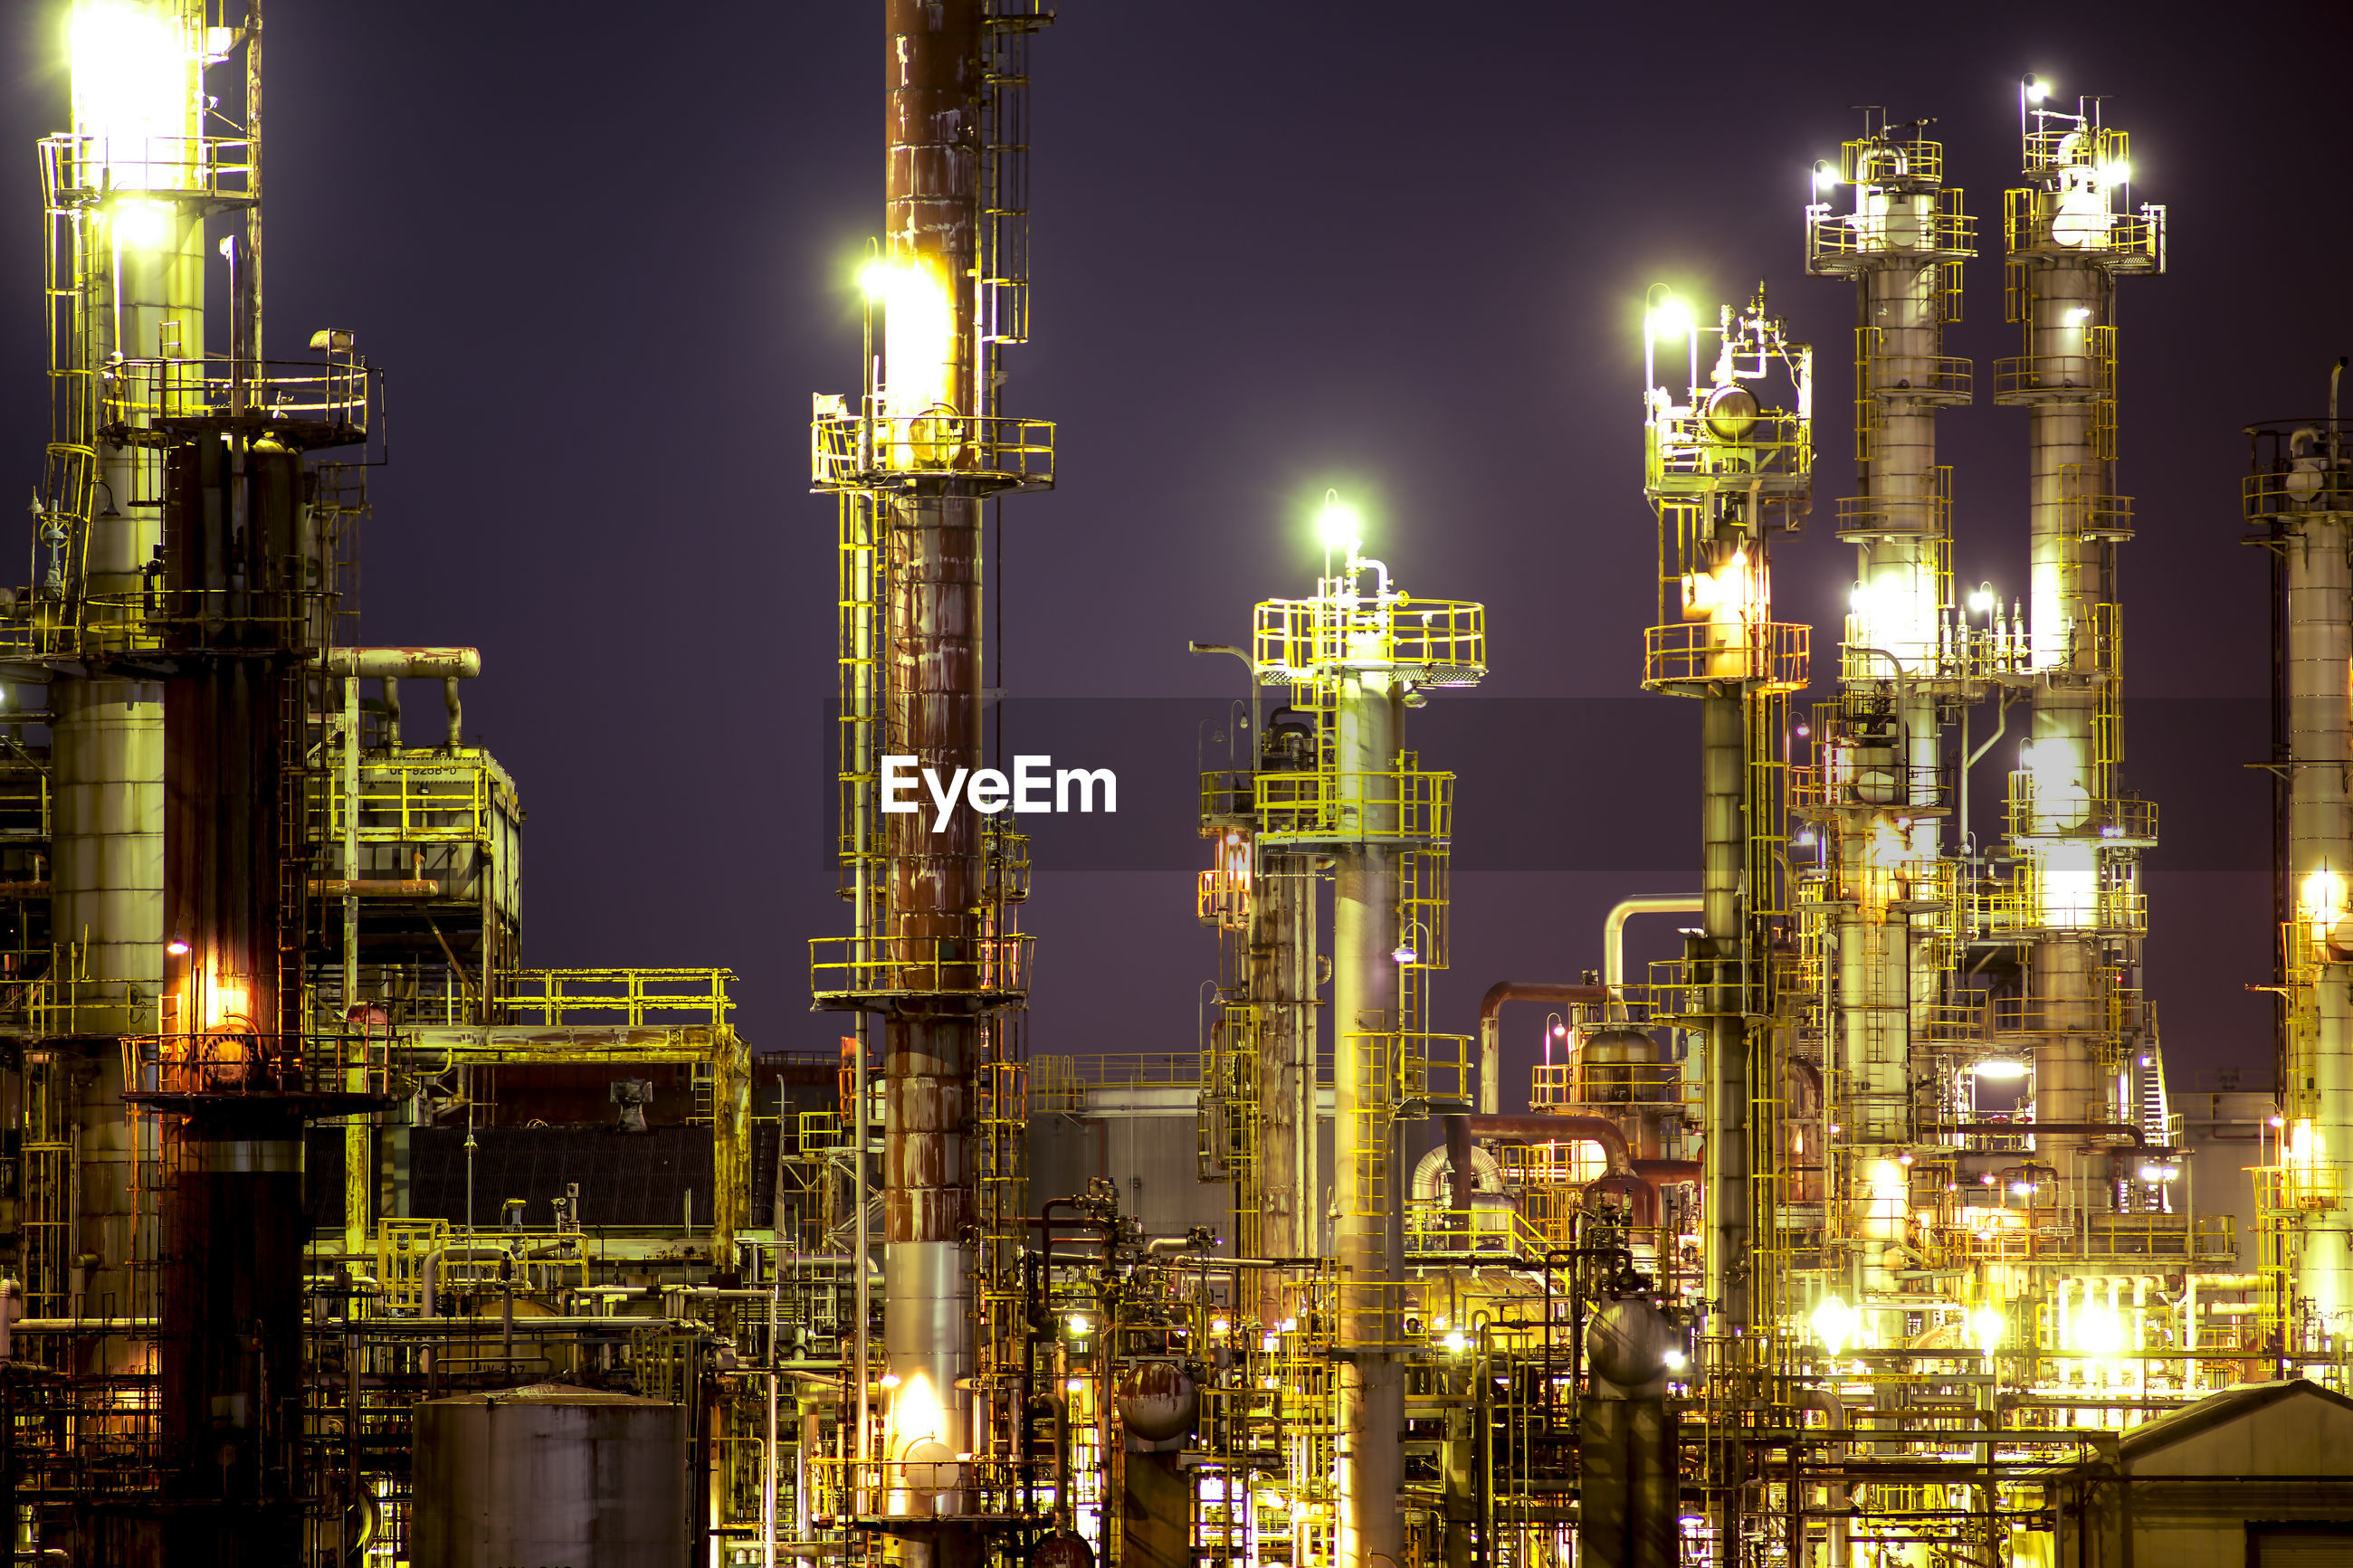 Low angle view of illuminated oil industry against sky at night